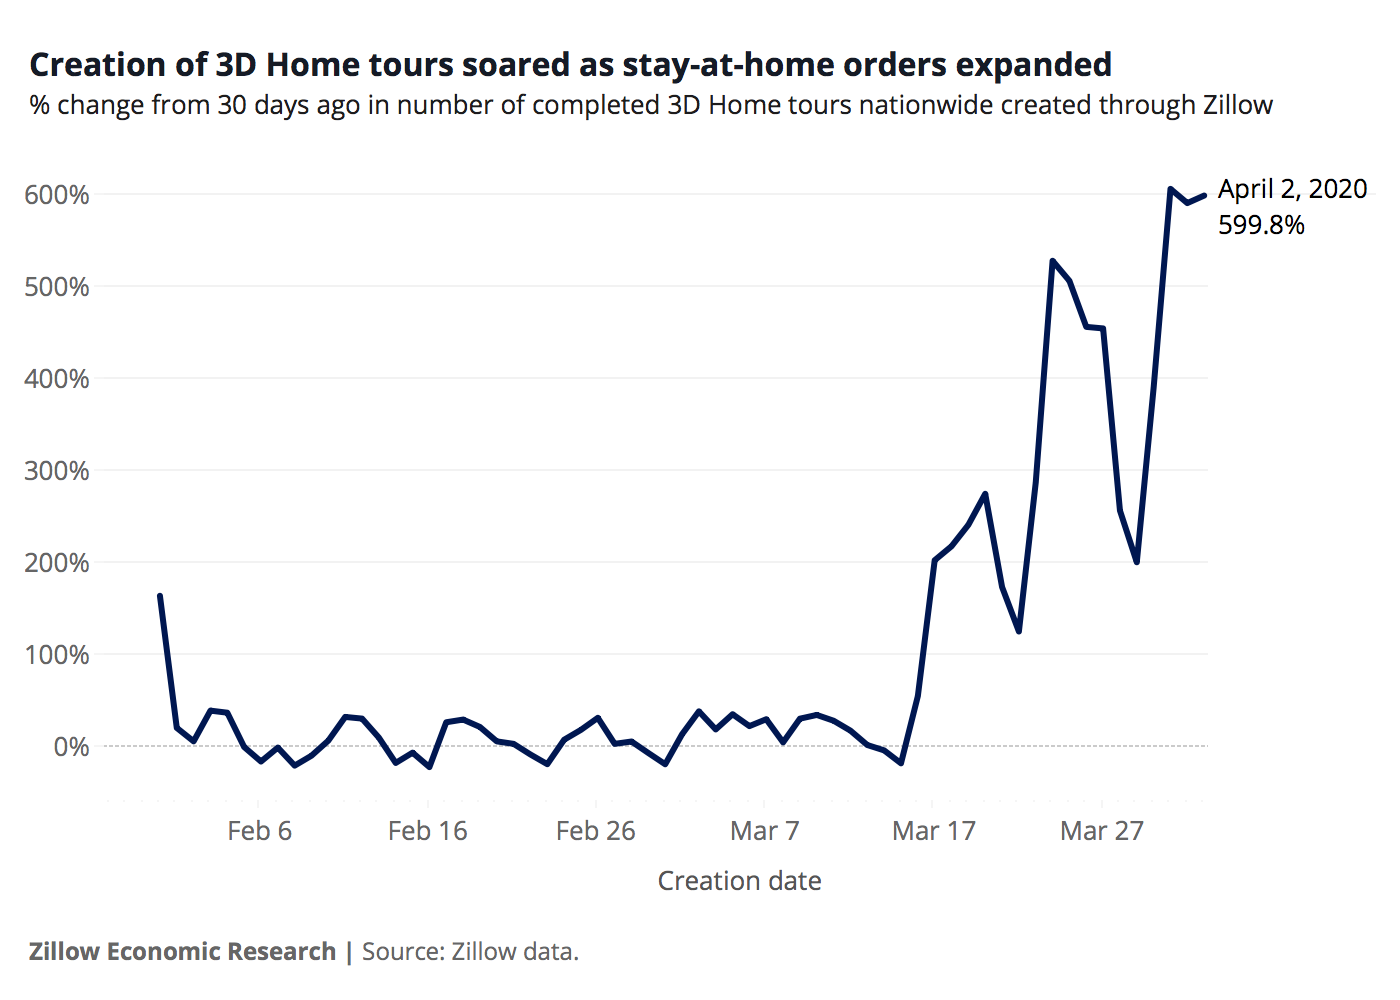 Creation of 3D home tours soared as stay-at-home orders expanded